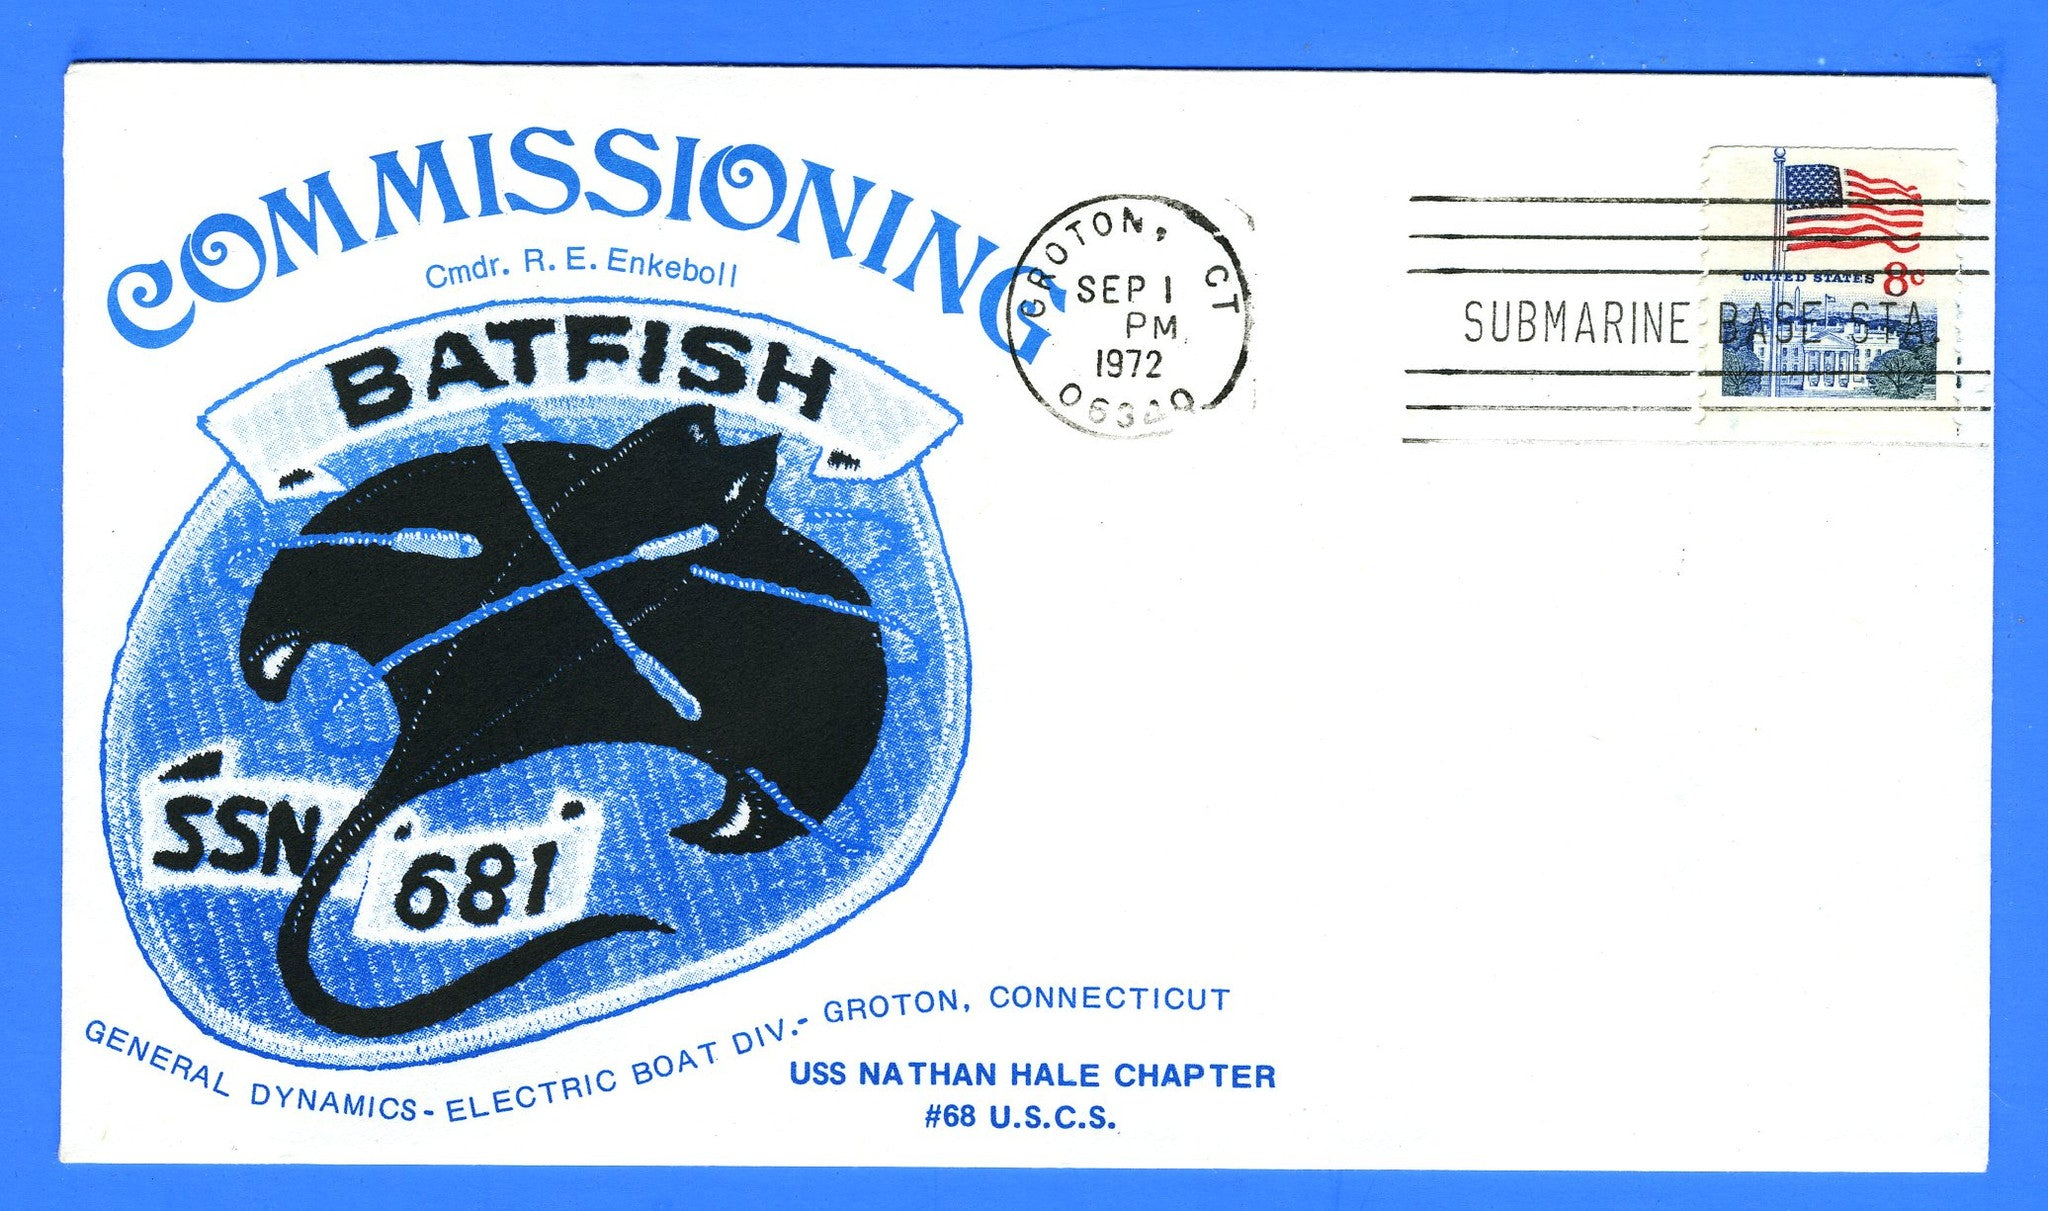 USS Batfish SSN-681 Commissioned September 1, 1972 - Cachet Maker USCS Chapter 68 USS Nathan Hale